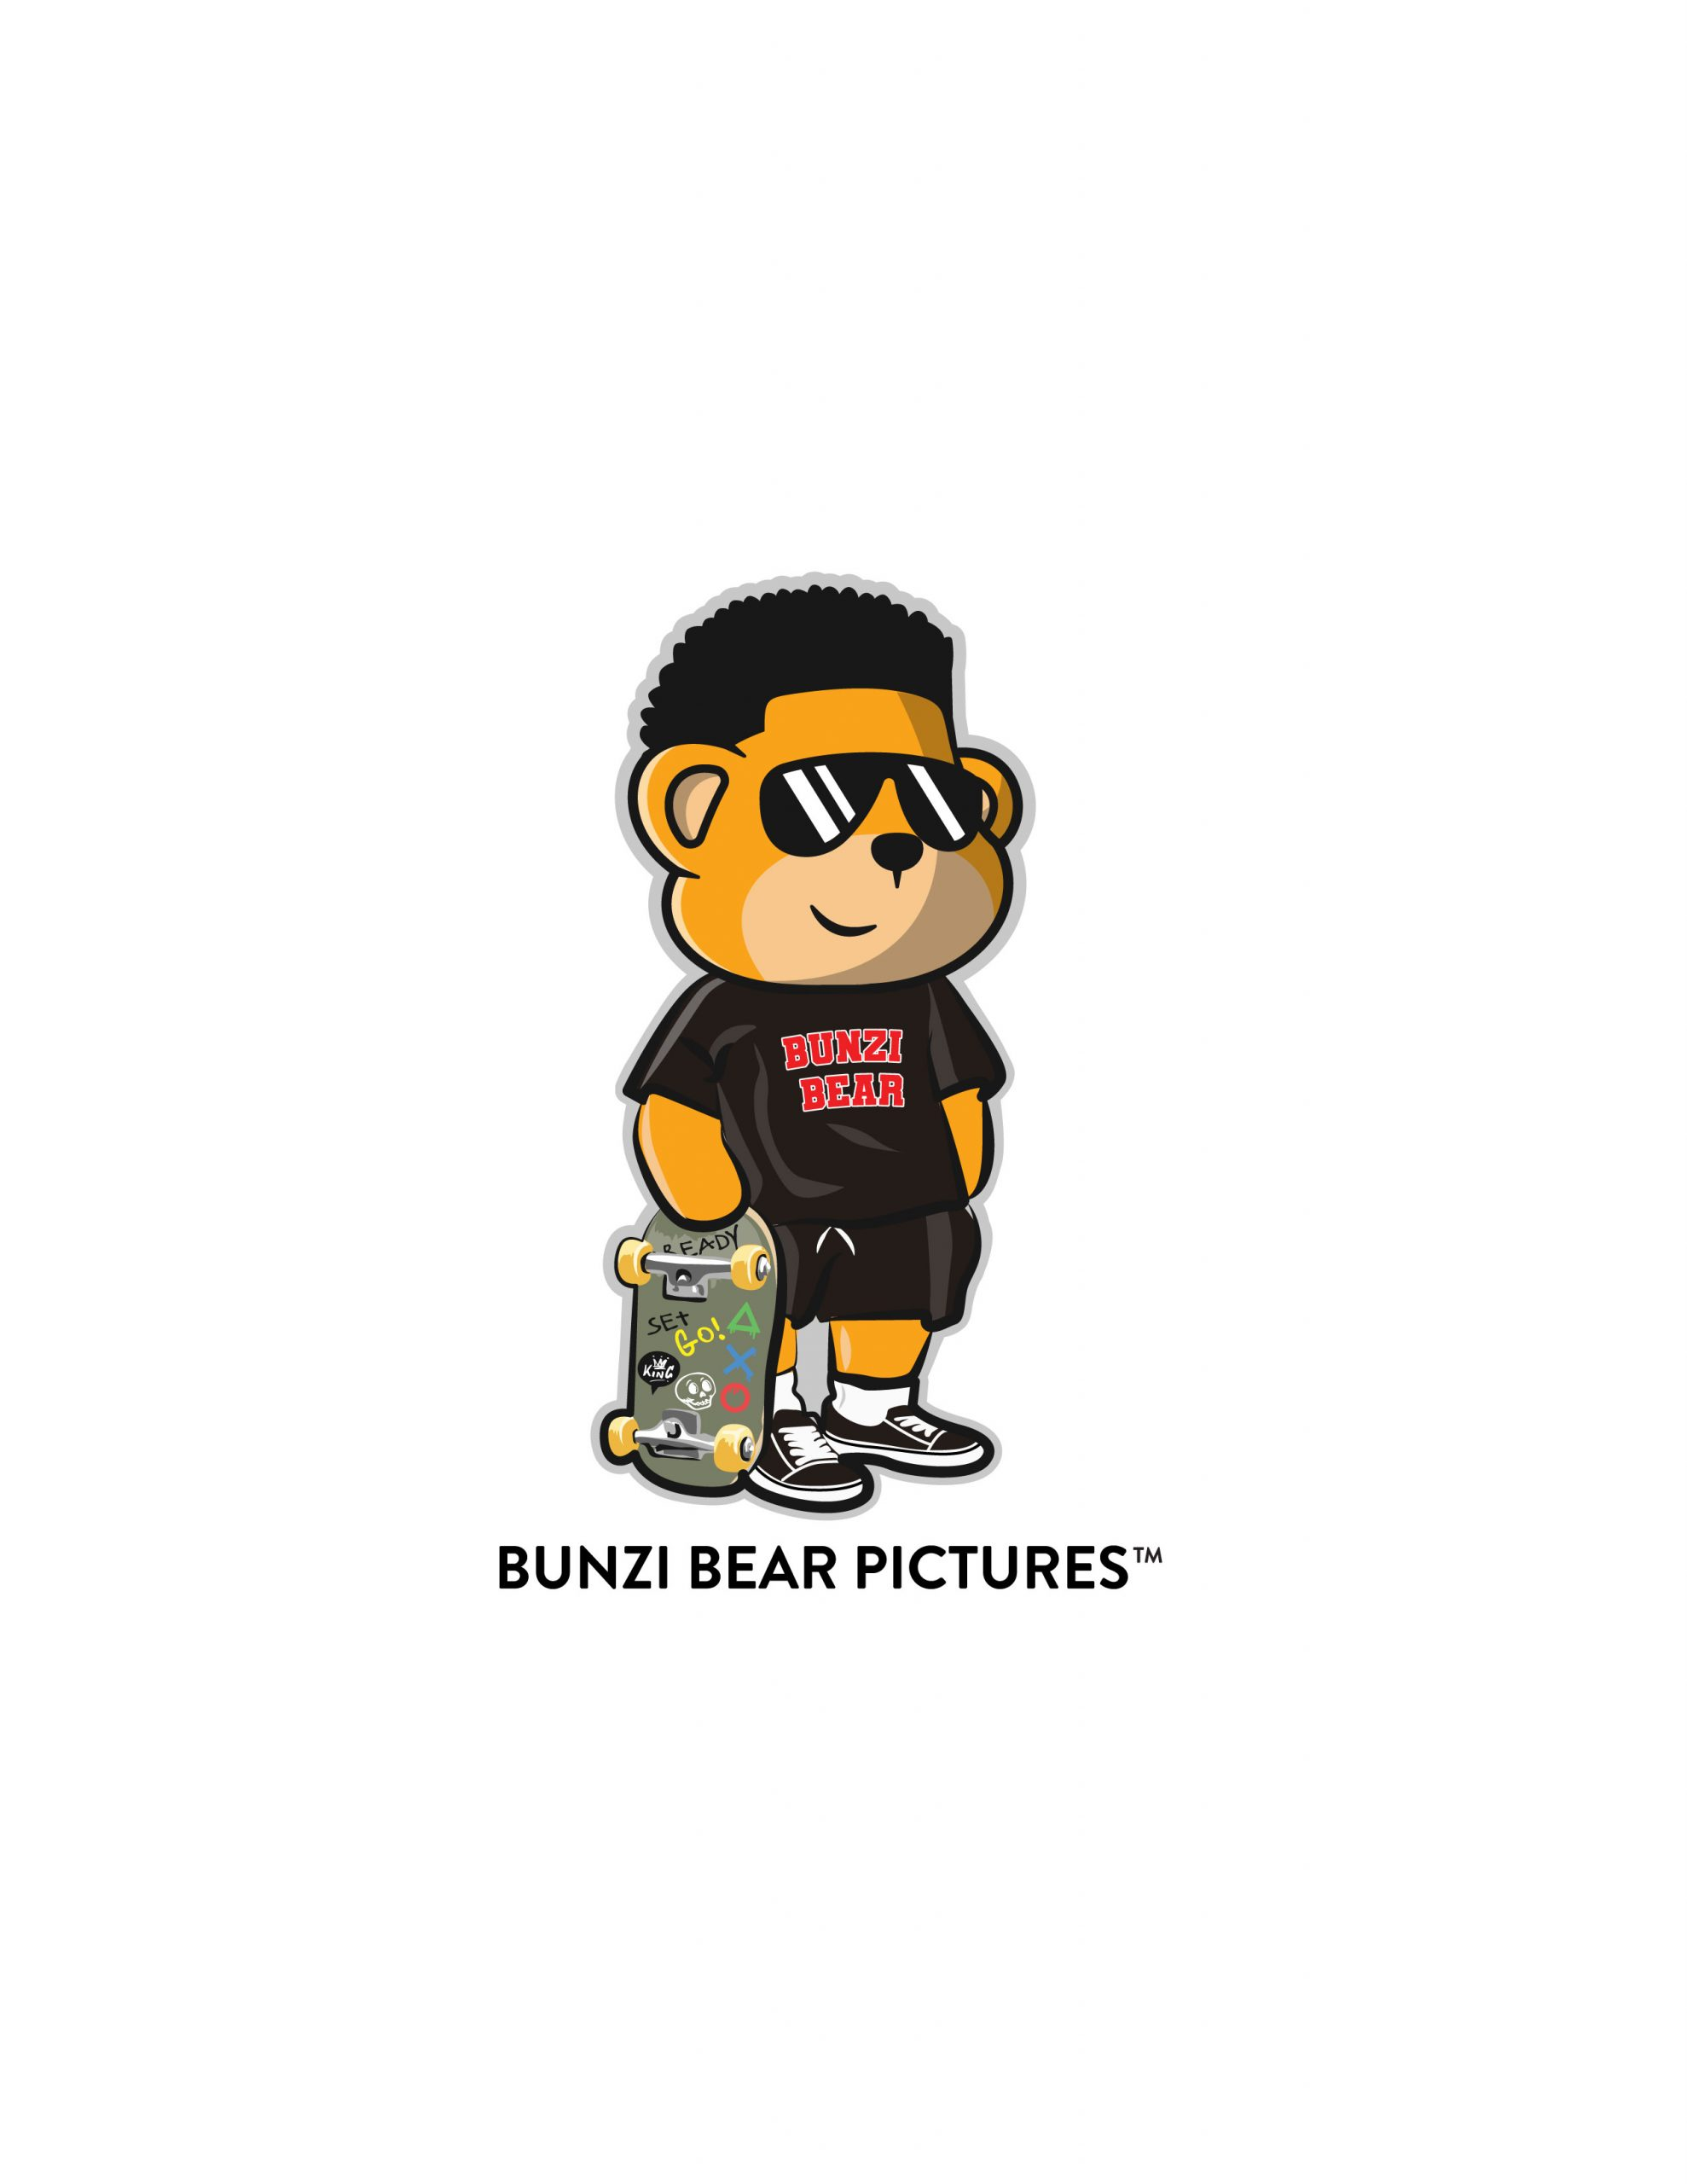 Business Listing for Bunzi Bear Pictures